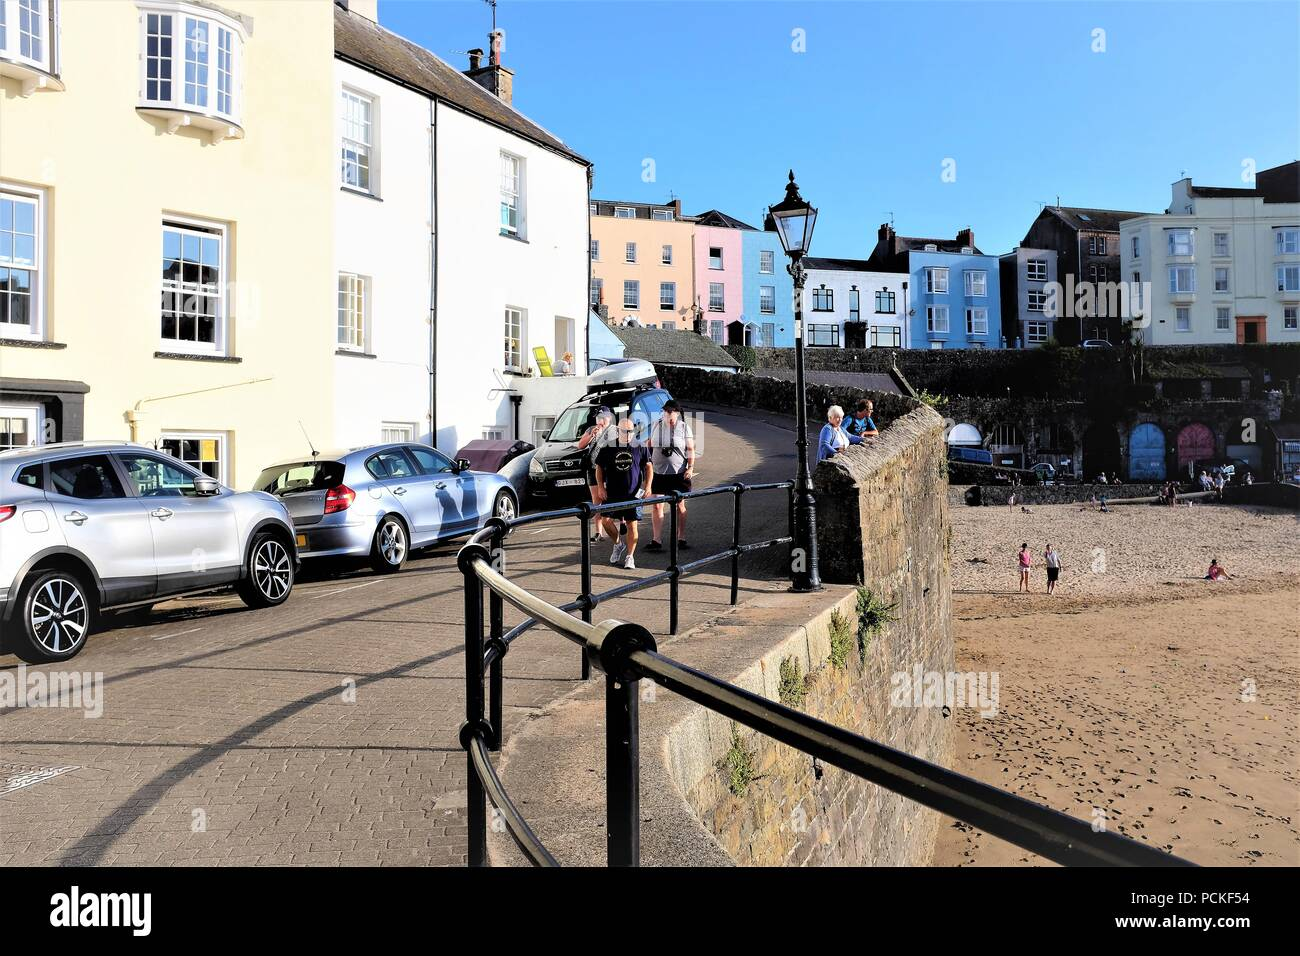 Tenby, Pembrokeshire, South Wales, UK, July 23, 2018.  Holidaymakers walking the  entrance to the pcturesque harbor quay at Tenby in South Wales, UK. Stock Photo